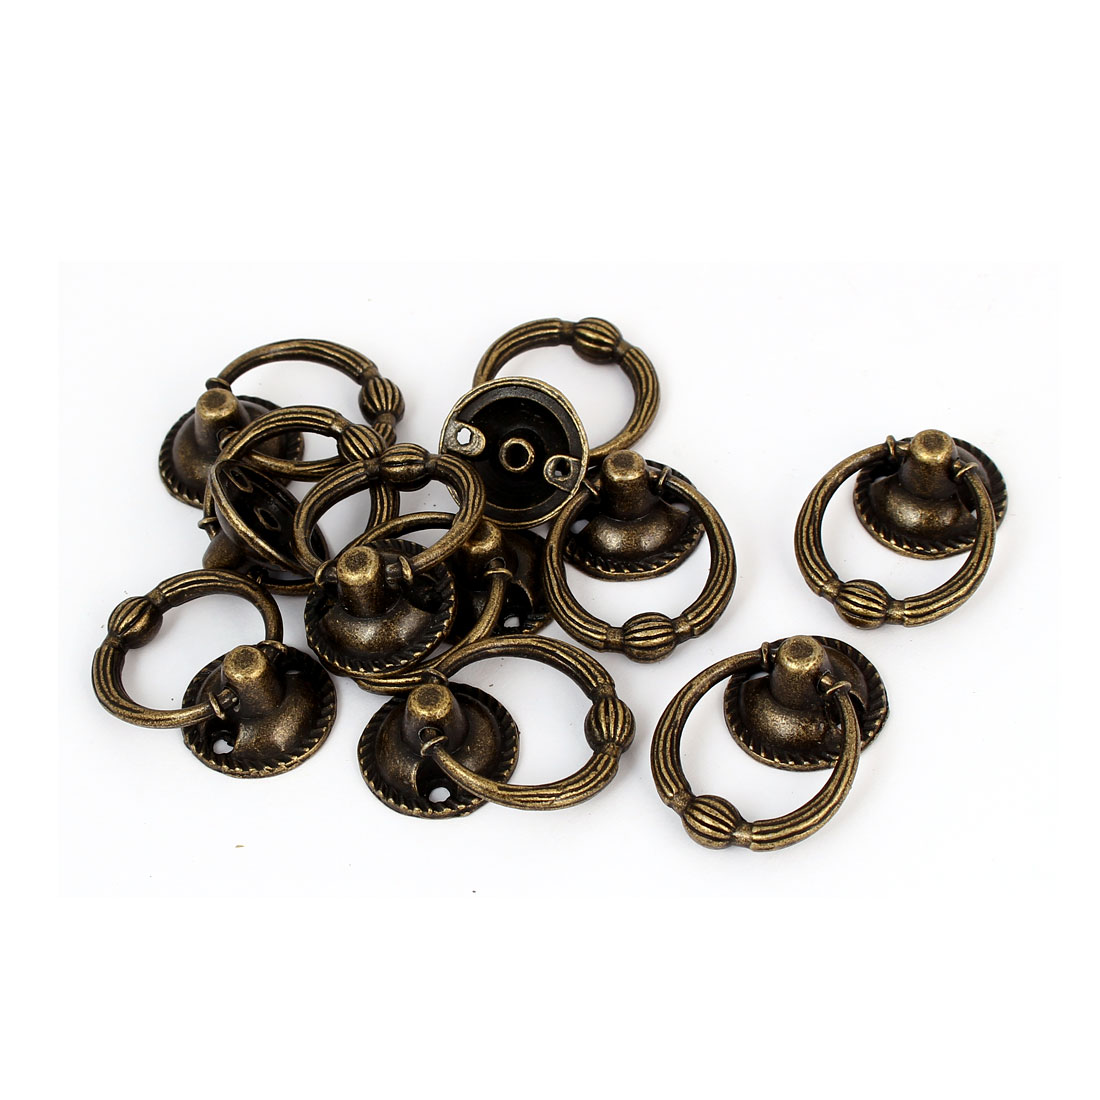 20mm Ring Dia Zinc Alloy Retro Style Round Base Pull Handle Bronze Tone 10pcs